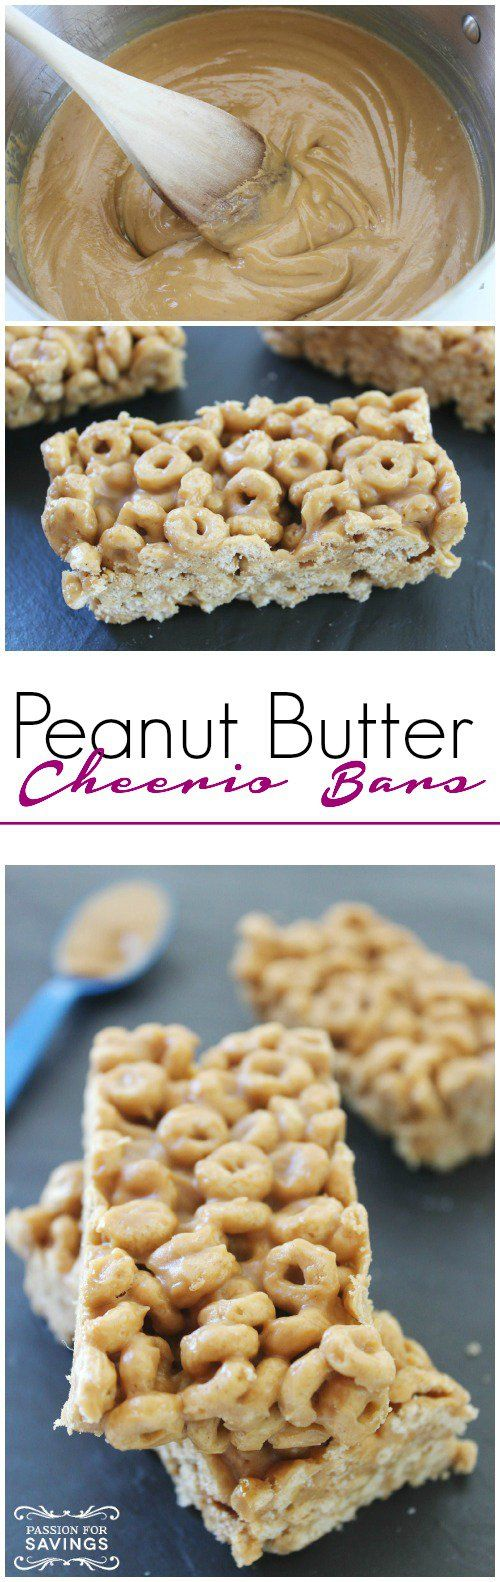 Peanut Butter Cheerio Bars  Use Sunbutter and Crispy Rice cereal instead